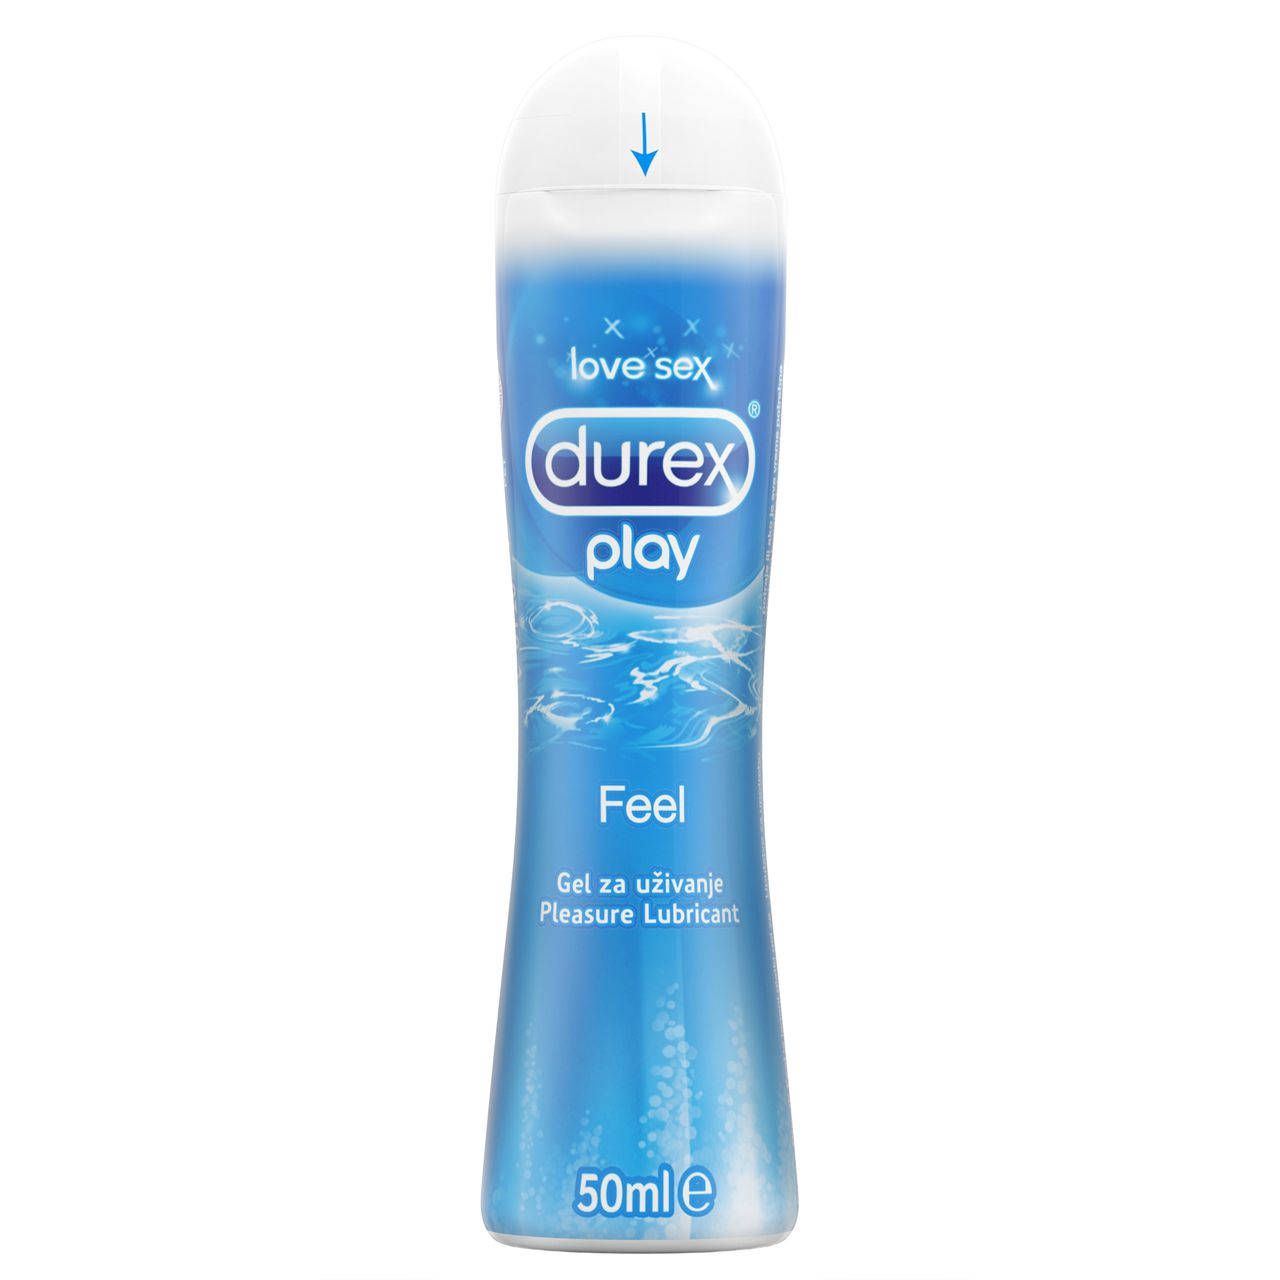 Durex Play Feel - 50ml